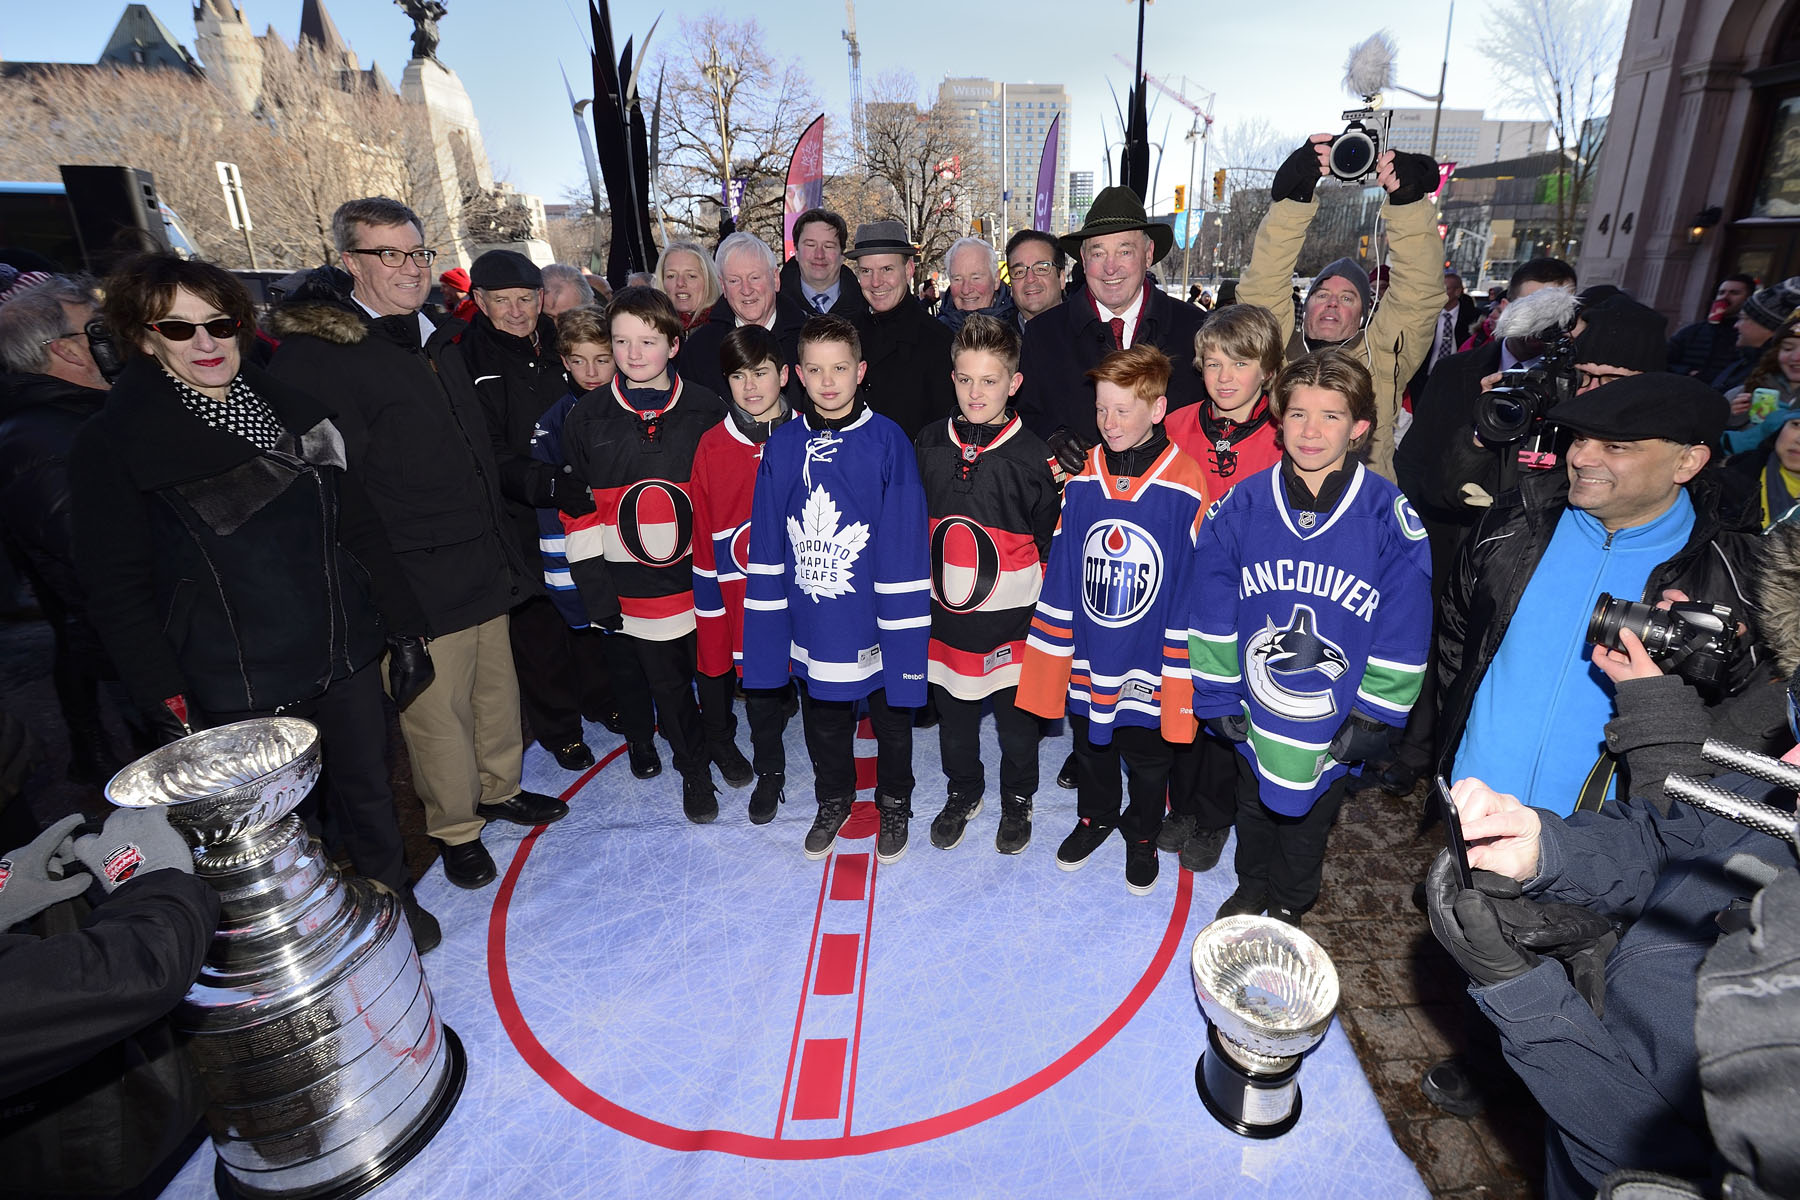 The monument will be donated to the City of Ottawa and unveiled in December 2017 as part of the 150th anniversary of Confederation, the 125th anniversary of the Stanley Cup, the 100th anniversary of the National Hockey League, and the 25th anniversary of the Ottawa Senators Hockey Club.